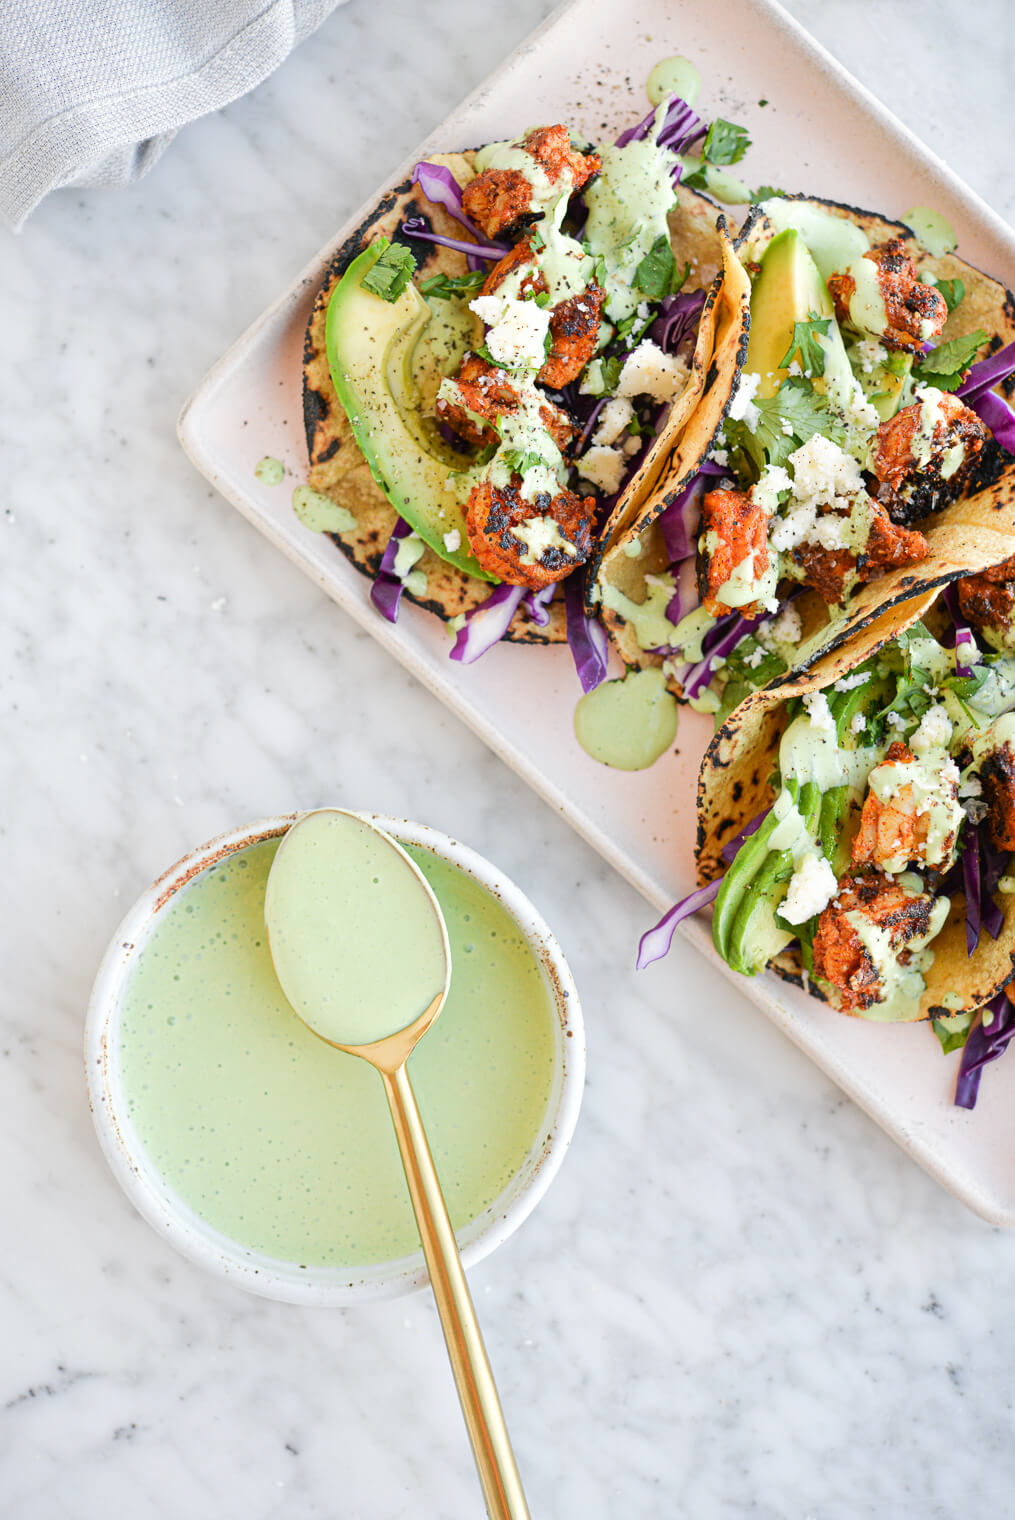 the top view of a platter of shrimp tacos (filled with seared shrimp, sliced avocado, red cabbage, and a creamy green yogurt sauce) sitting next to a bowl filled with more sauce all sitting on a marble surface